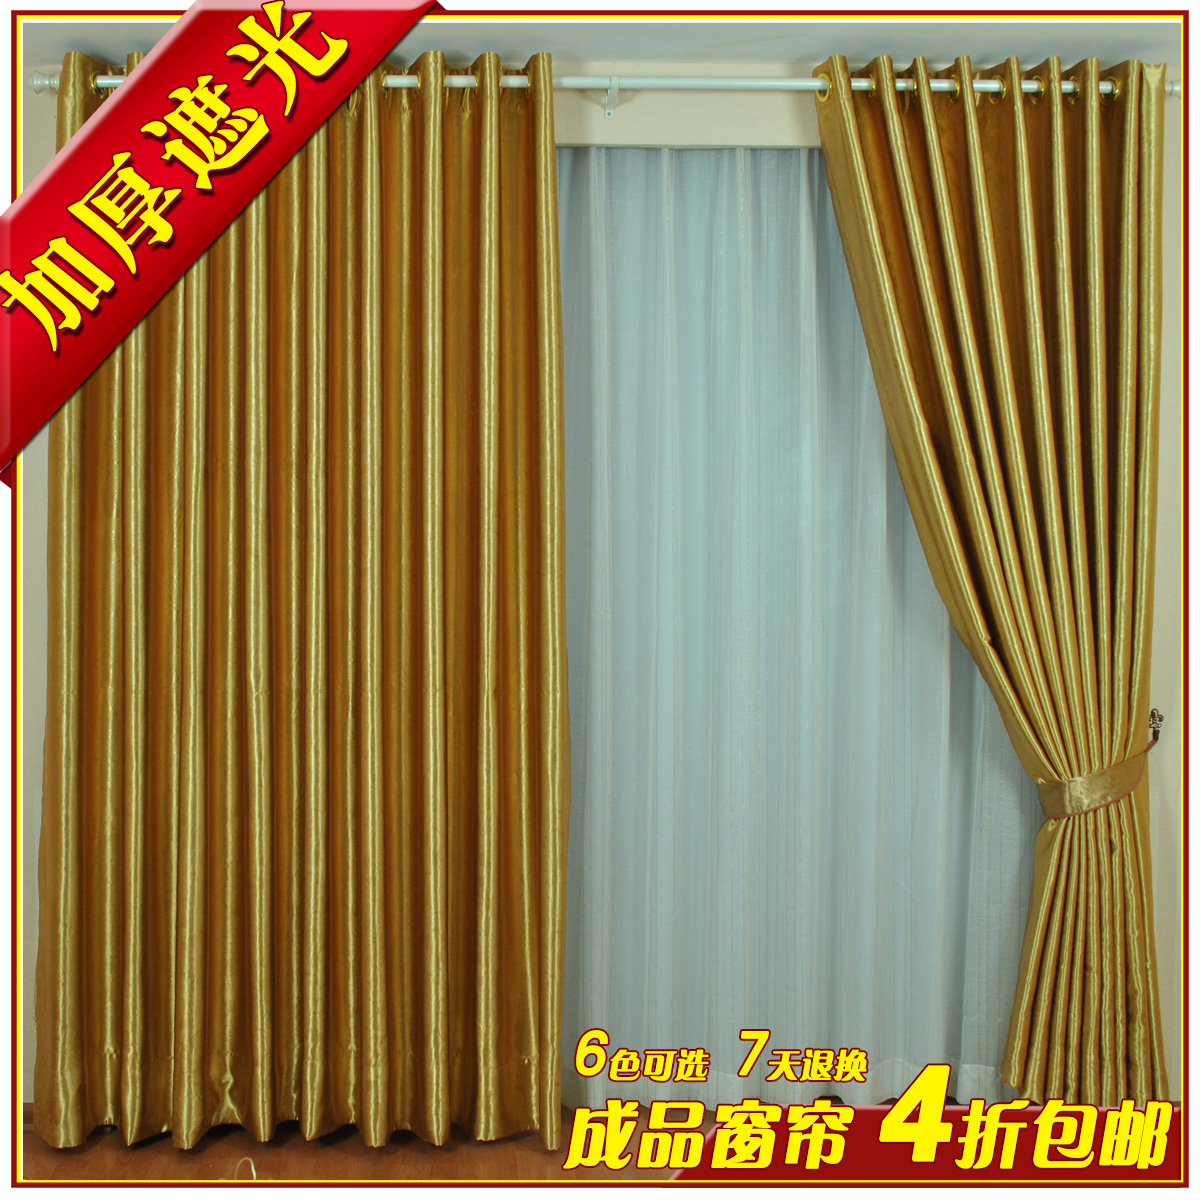 Thickened shading curtain bedroom balcony high-grade Piaochuang short curtains finished a special package mail